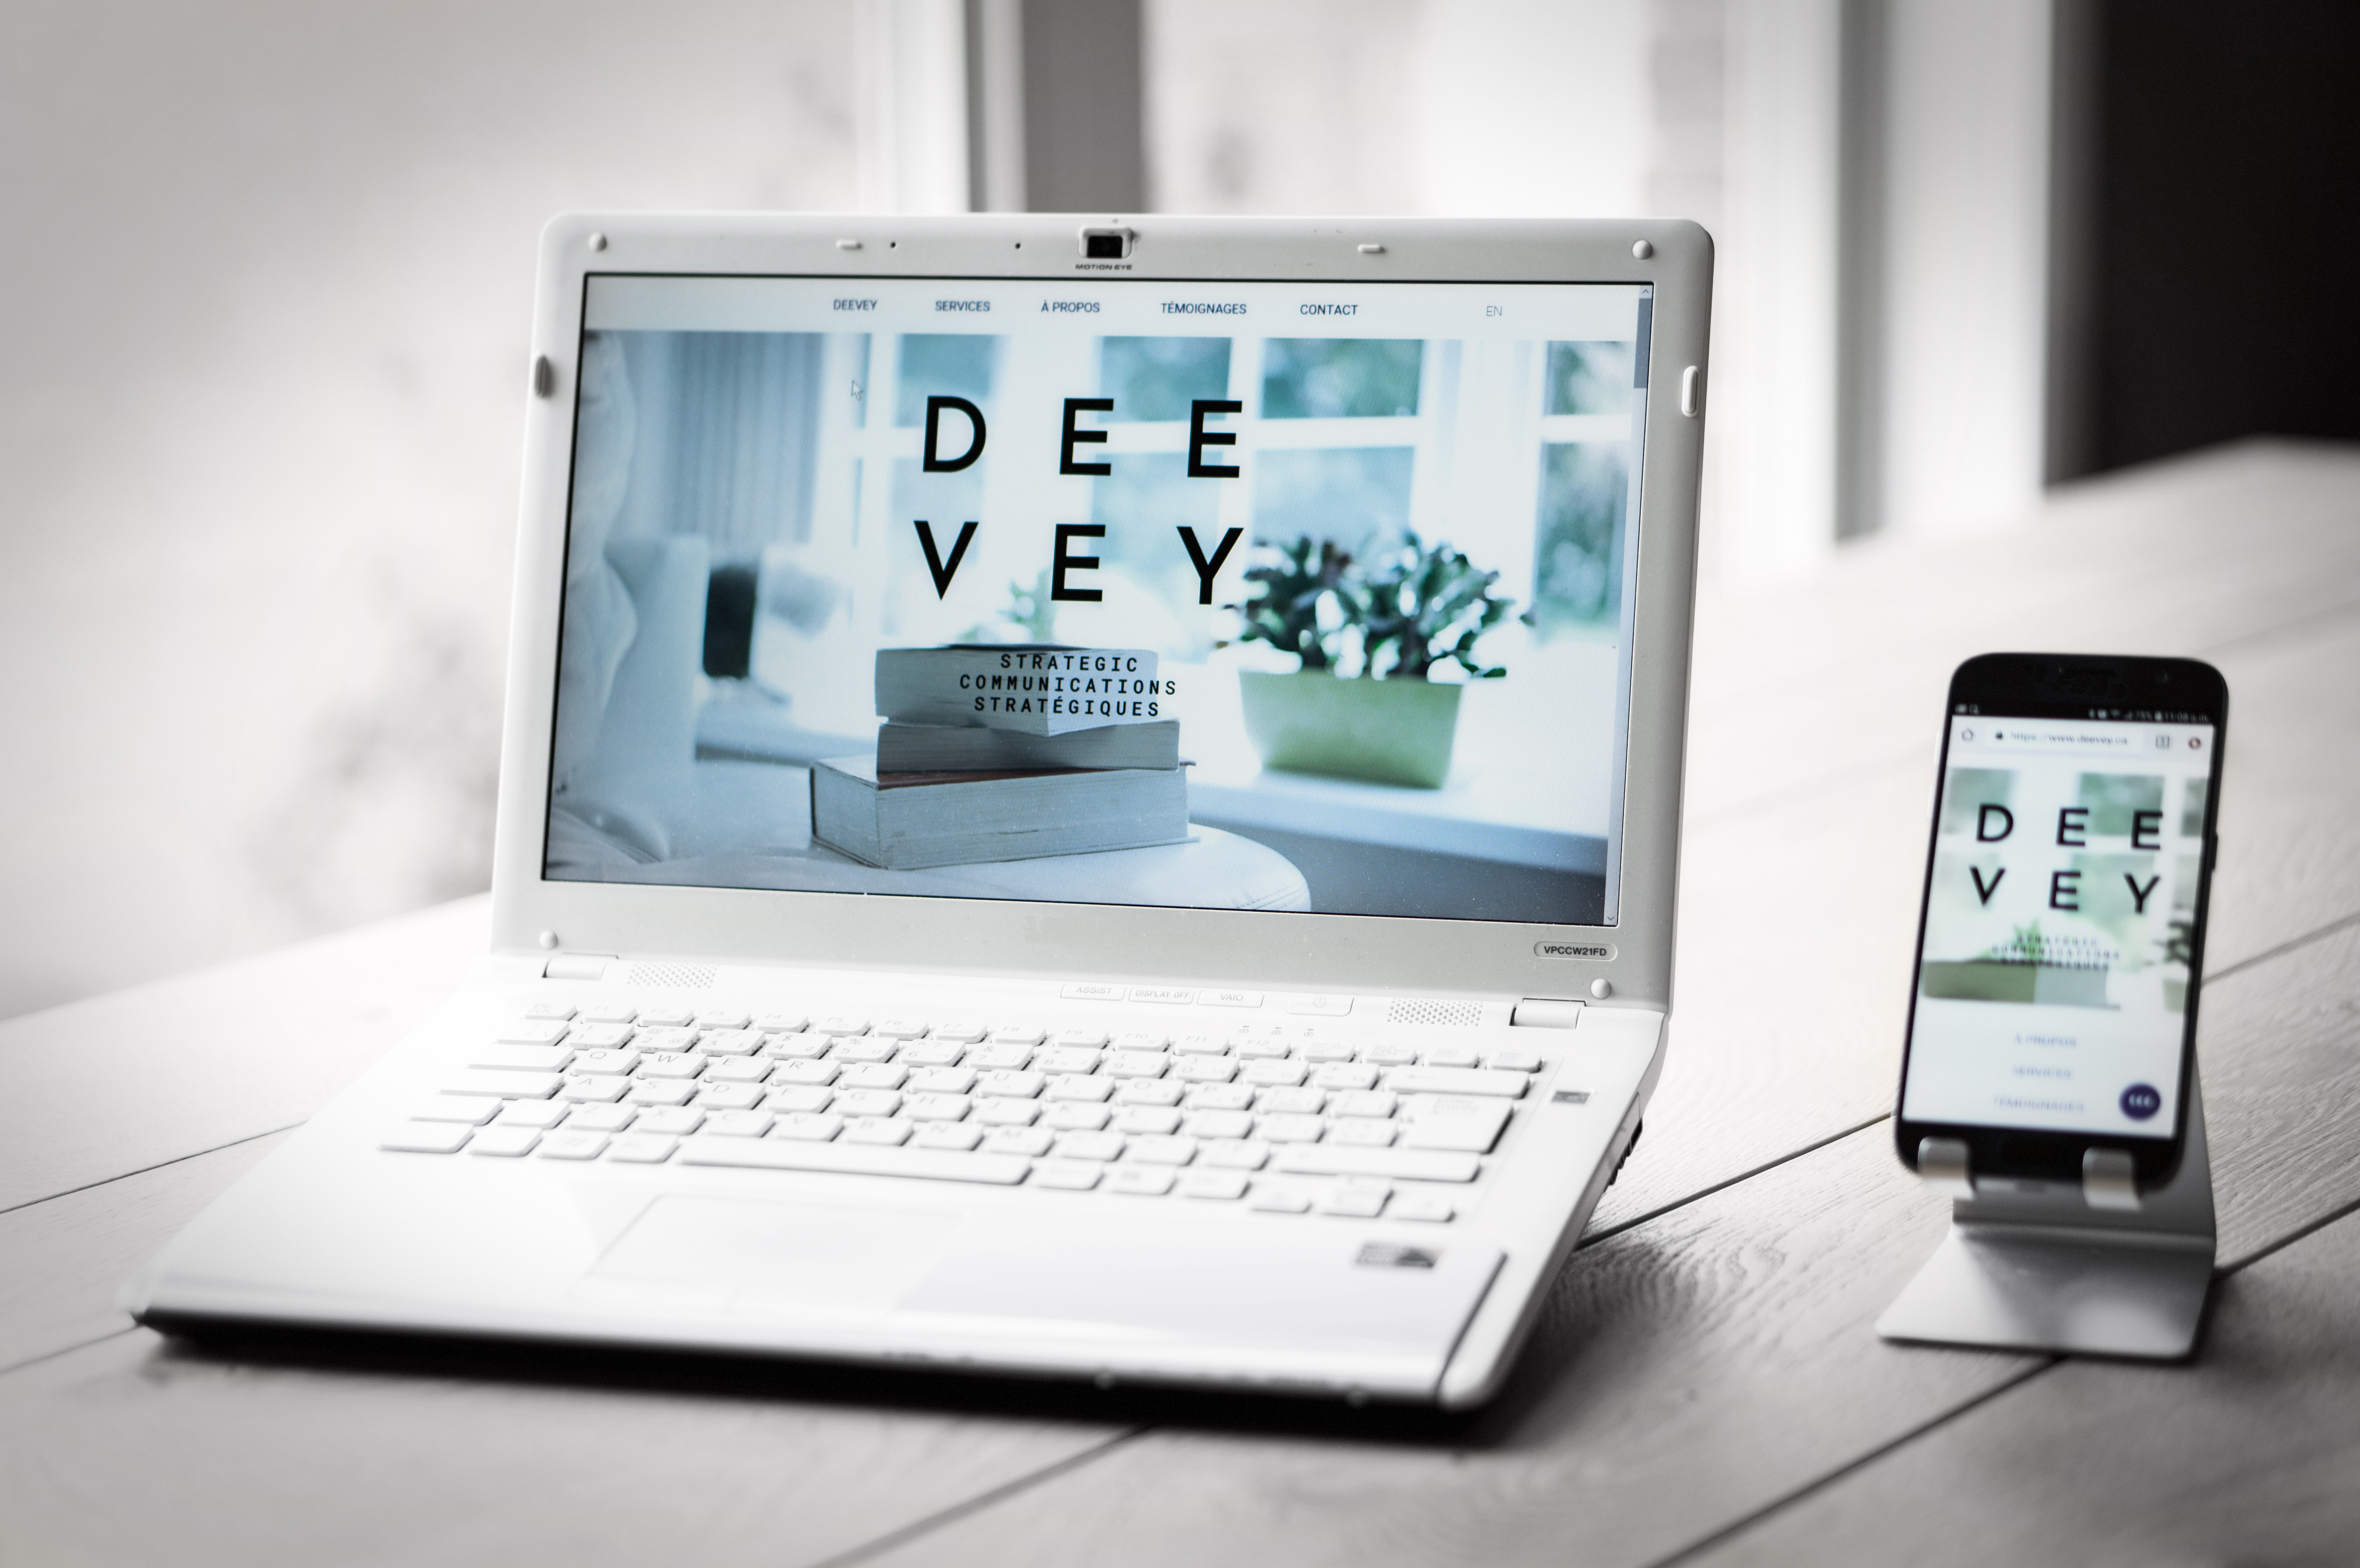 Deevey Communications